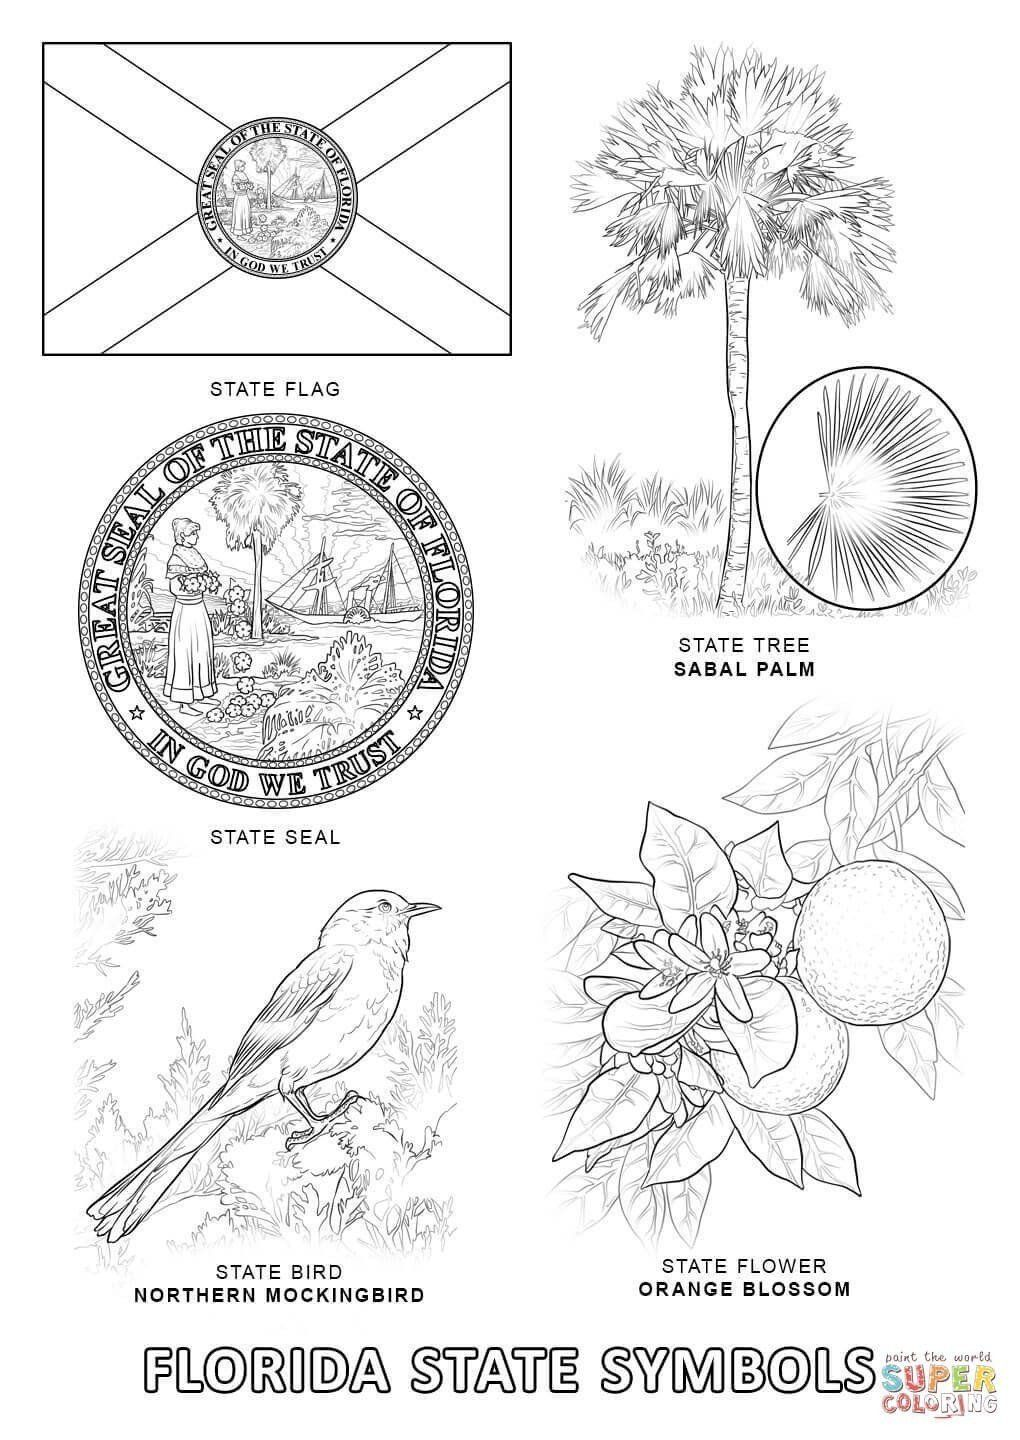 United States Coloring Page Beautiful Best Illinois Flag Coloring Pages Sirclaymelon Flag Coloring Pages Bird Coloring Pages Animal Coloring Pages